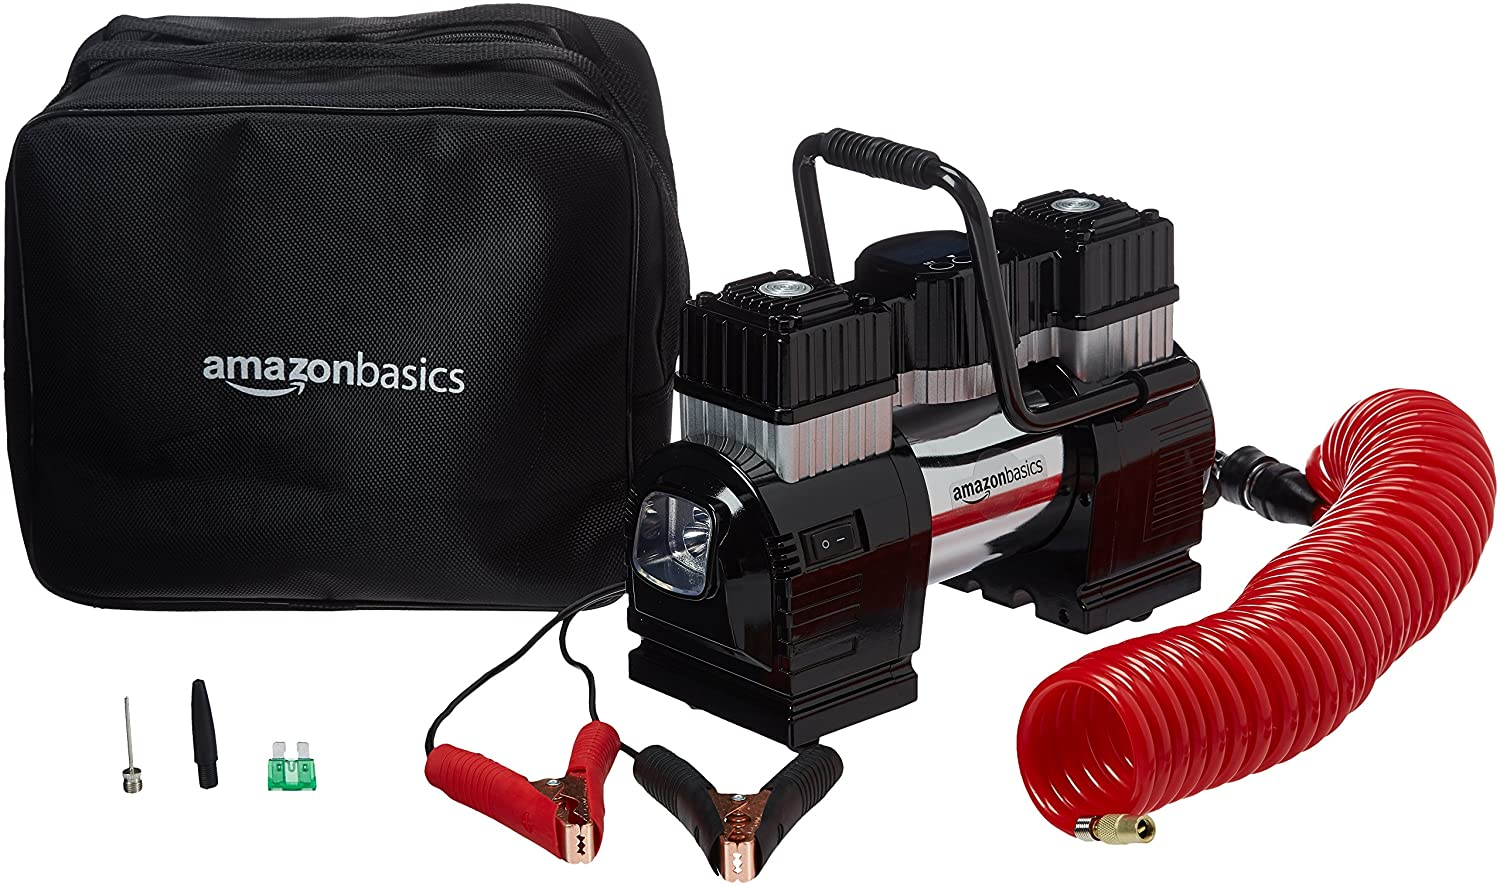 Dual Battery Clamps with Carrying Case Basics Portable Air Compressor